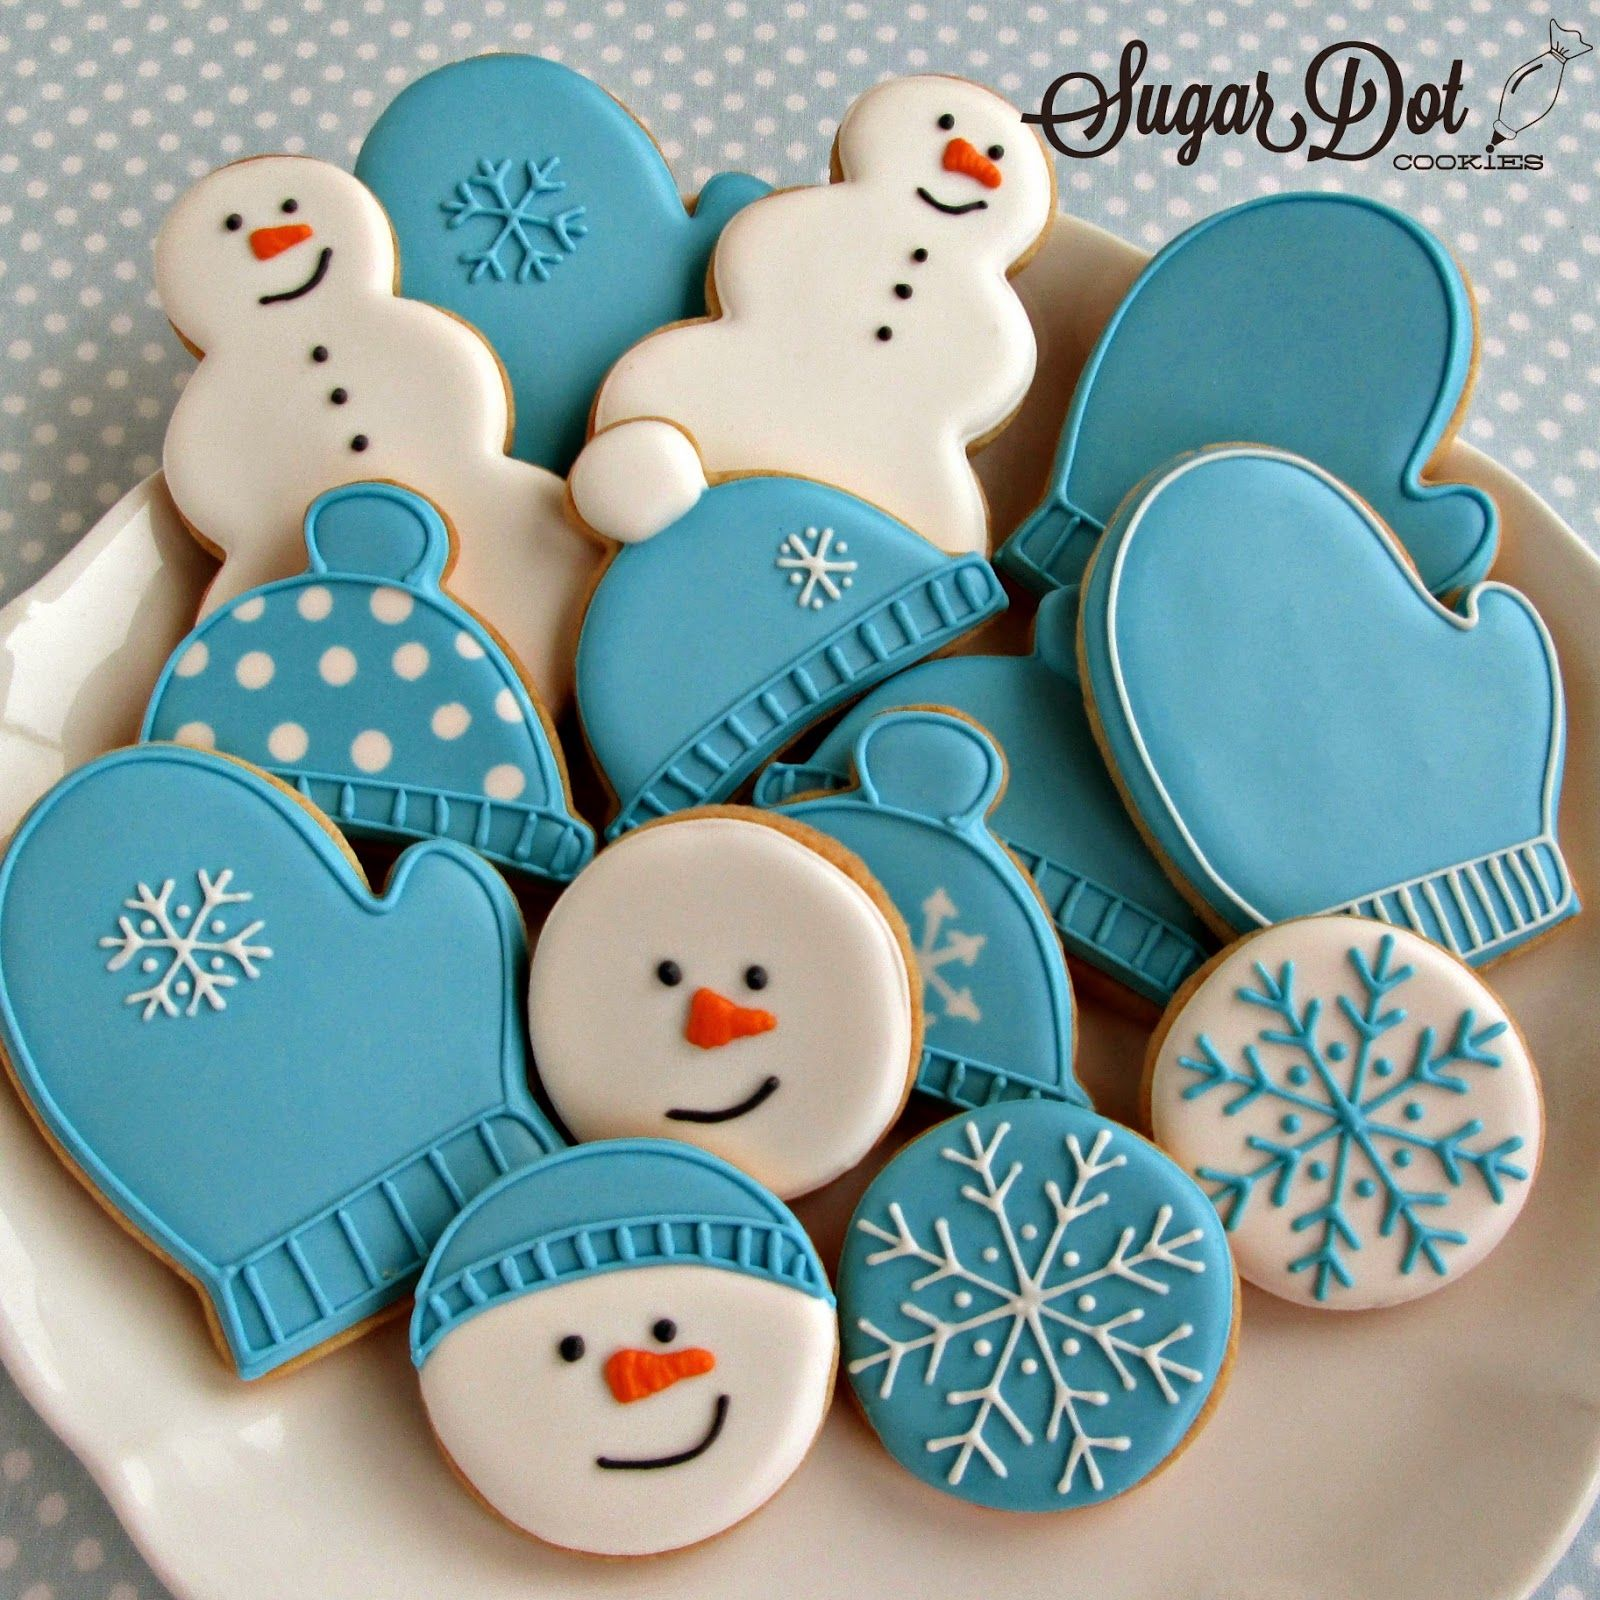 sugar dot cookies cookie decorating party january 2015 snowman cookies holiday cookies